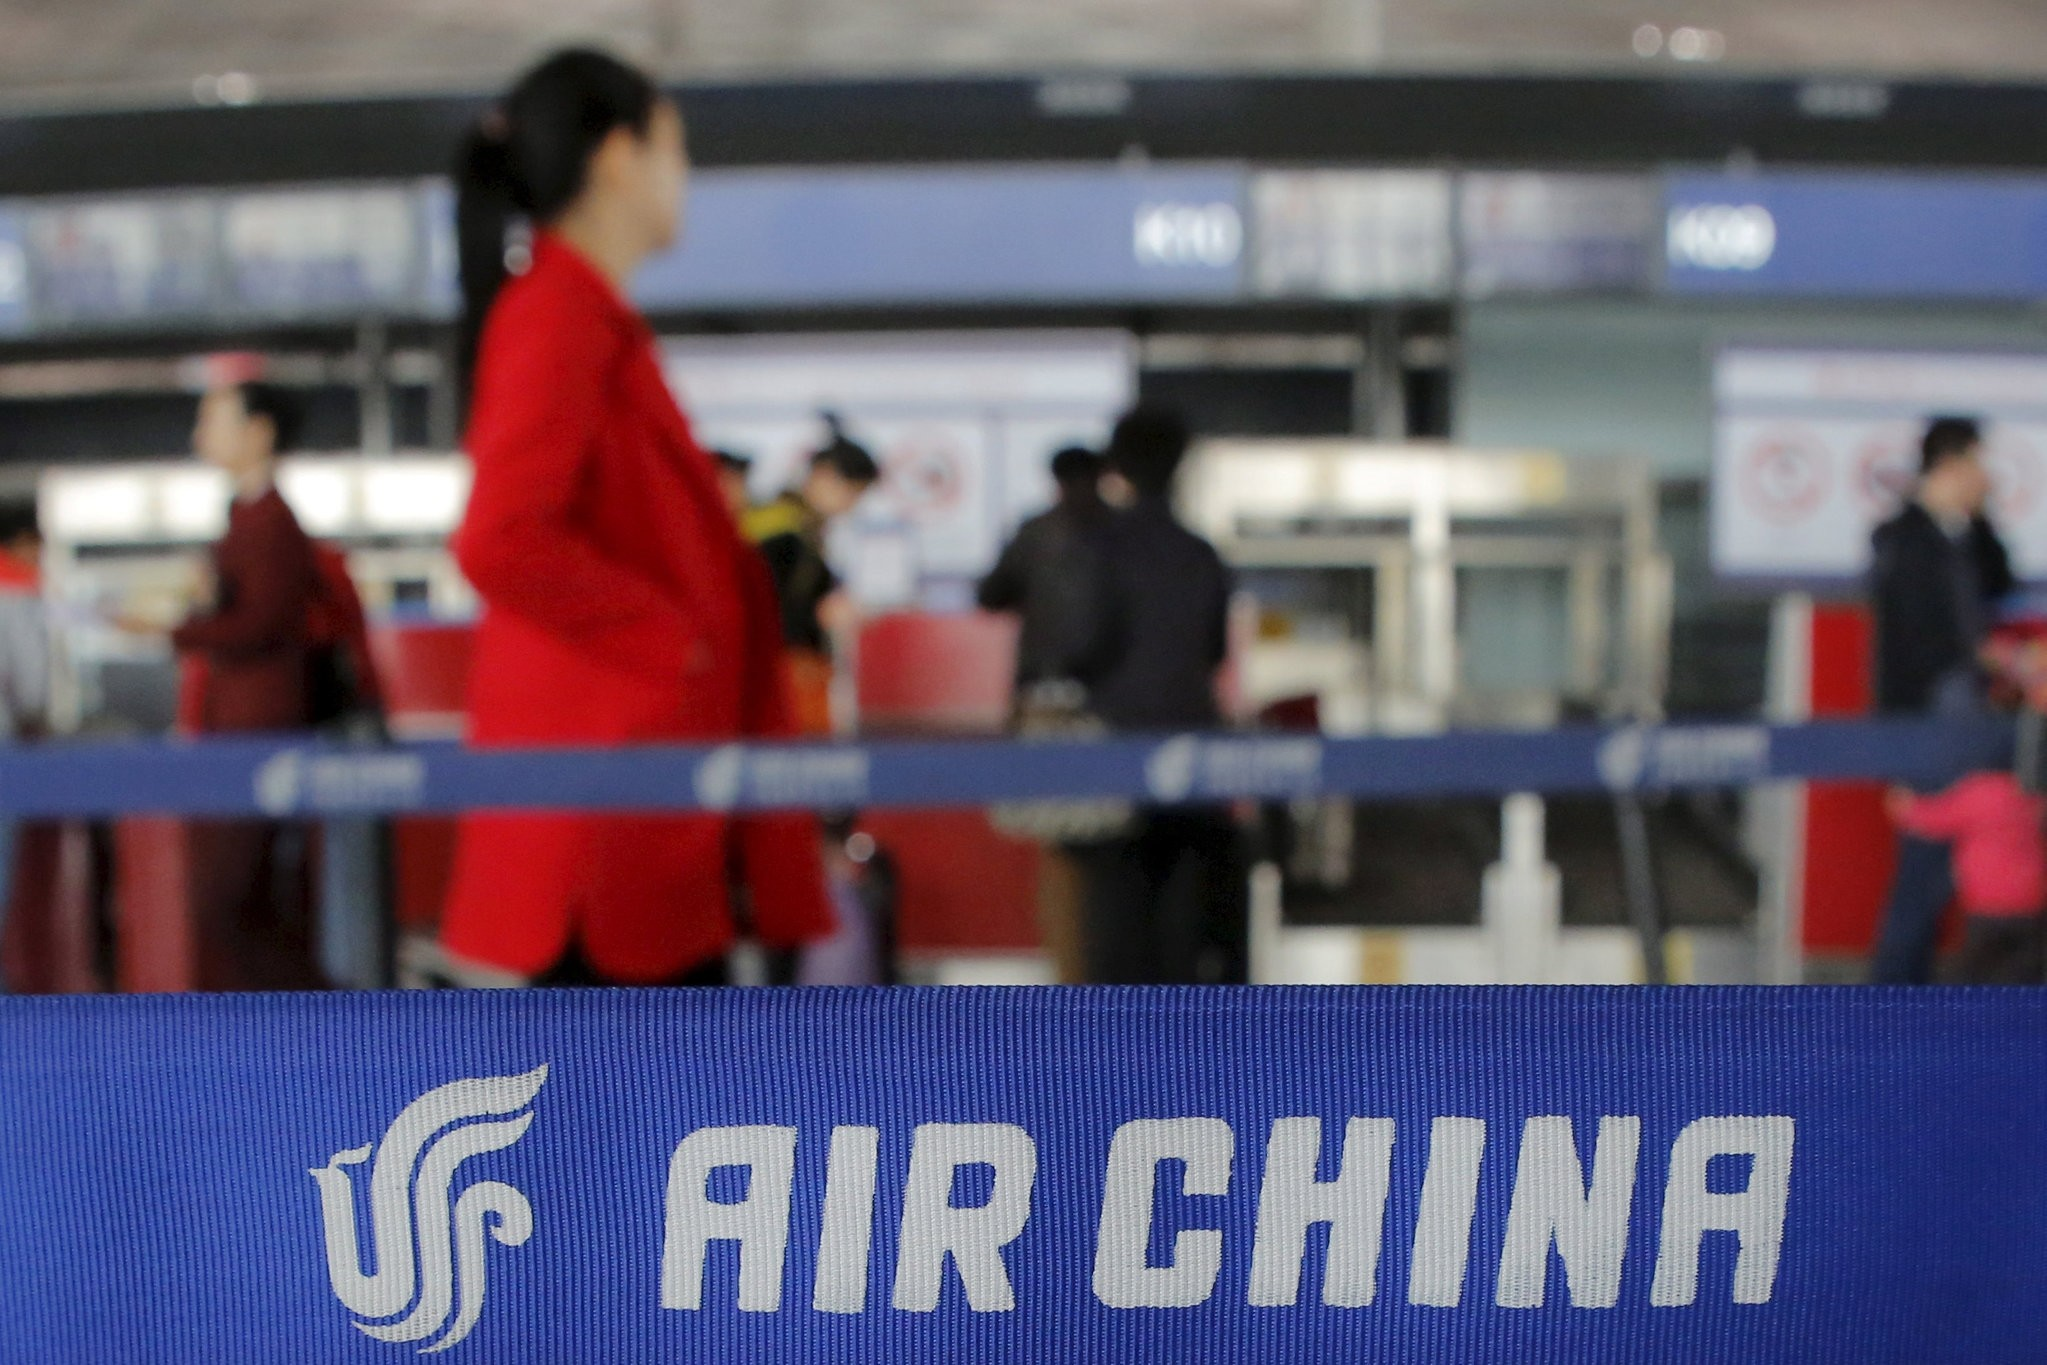 Passengers walk to ticket counters of Air China at a terminal of Beijing Capital International Airport in Beijing, China, March 28, 2016. (REUTERS Photo)